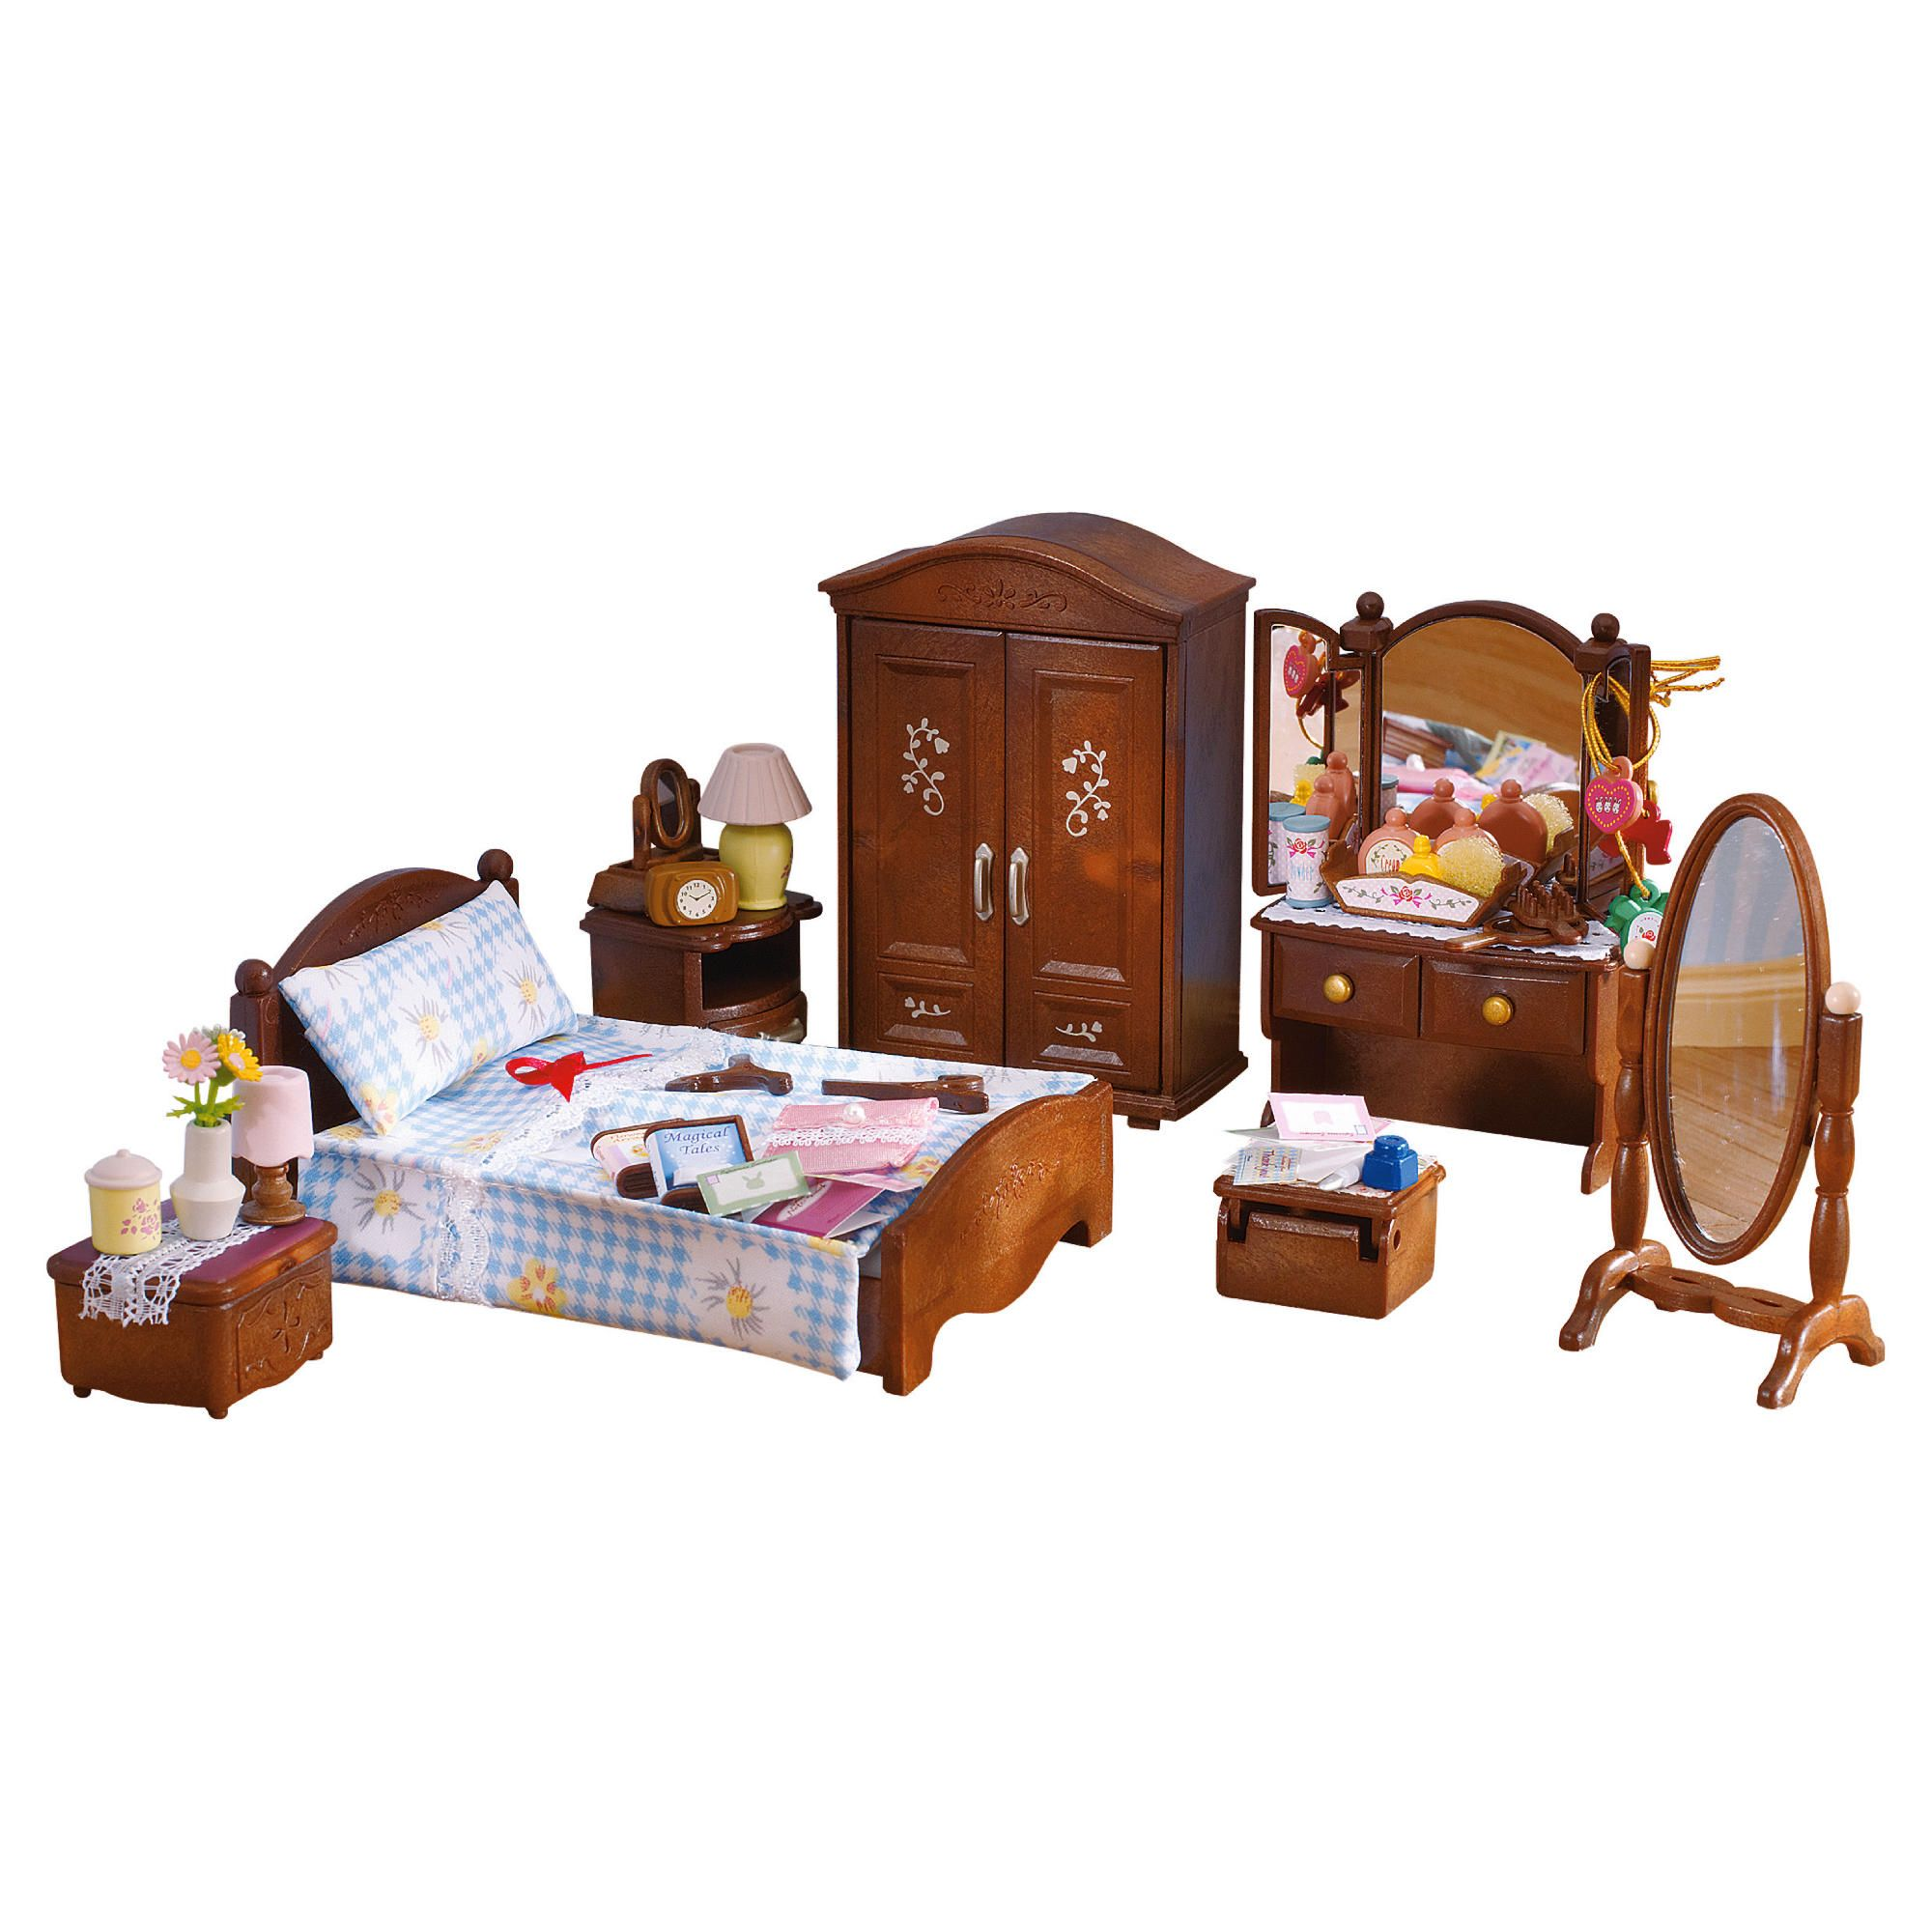 sylvanian master bedroom set myshop 17451